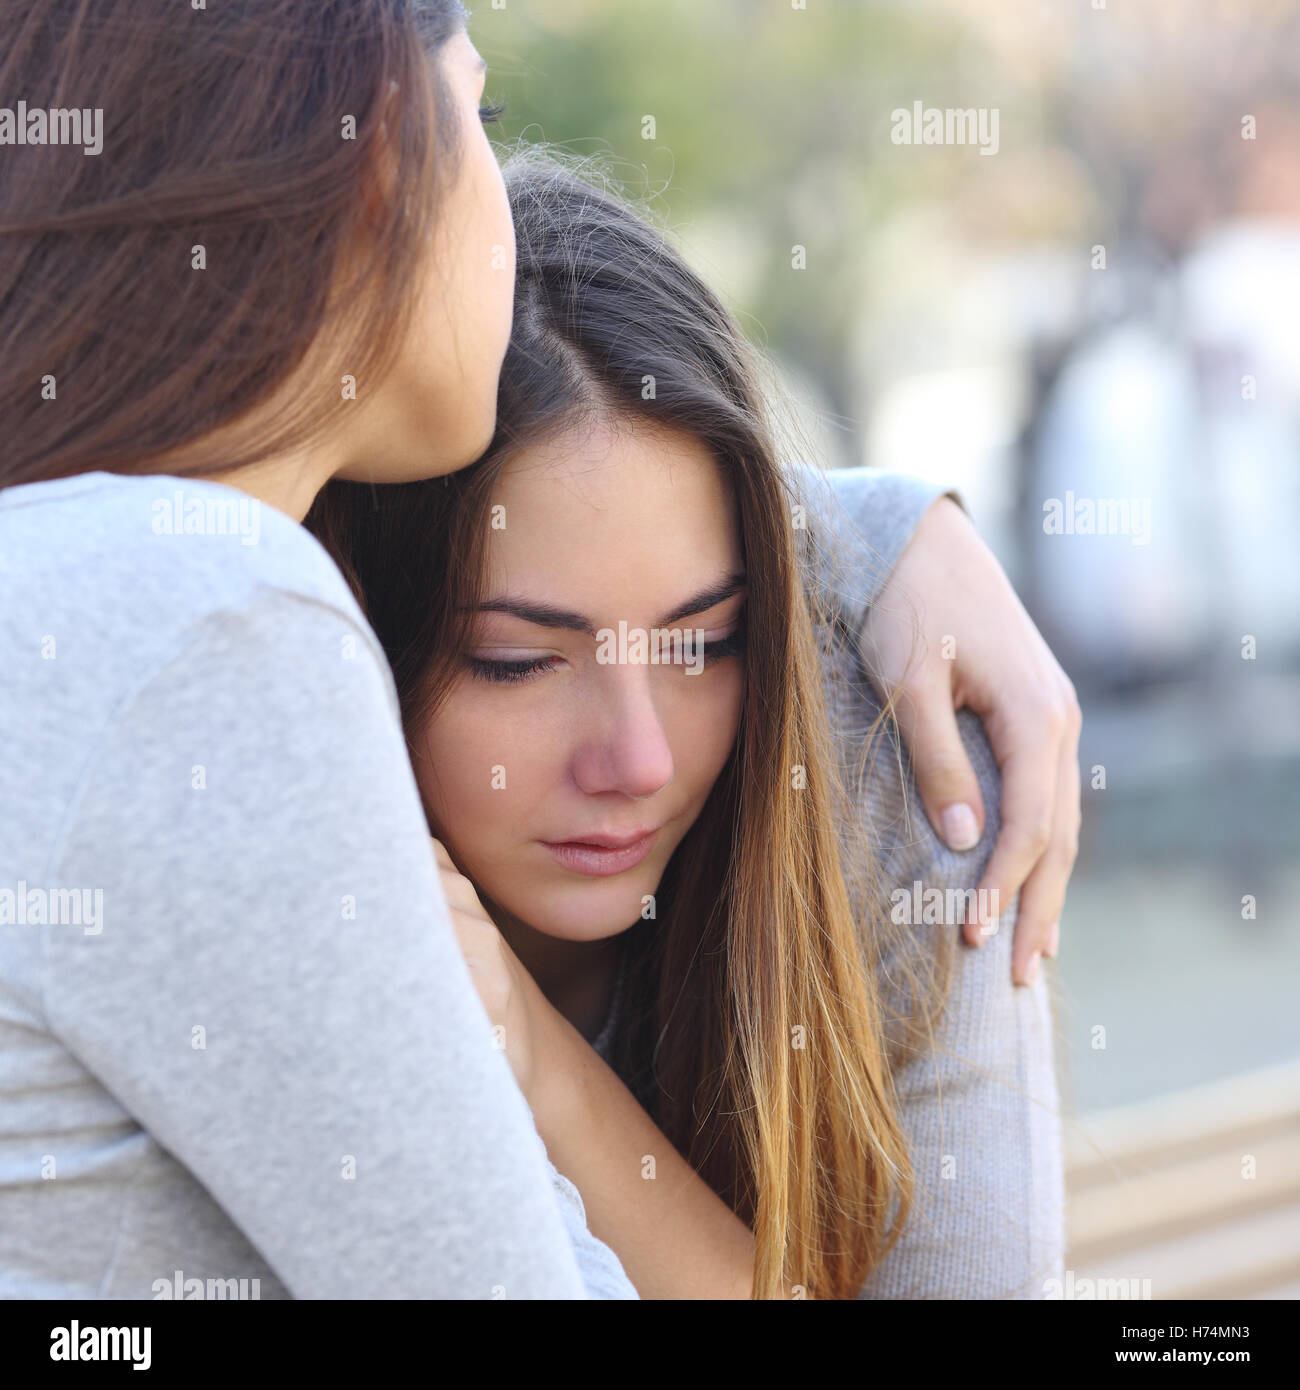 Sad girl crying and a friend comforting her - Stock Image